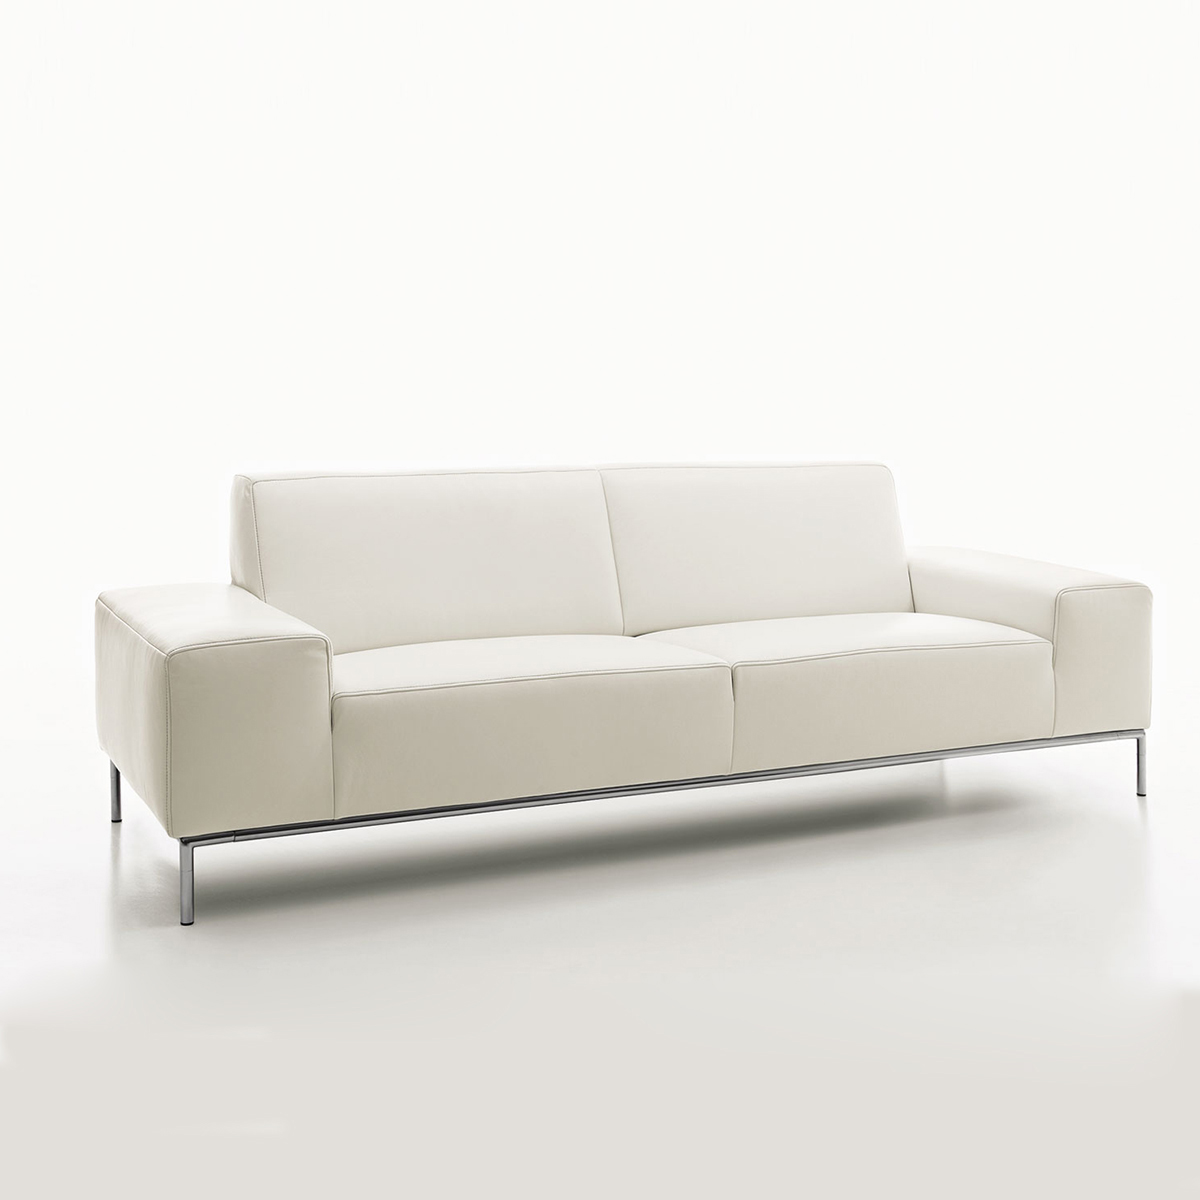 Sofa Groß Koinor Generale3 Sofa Gross